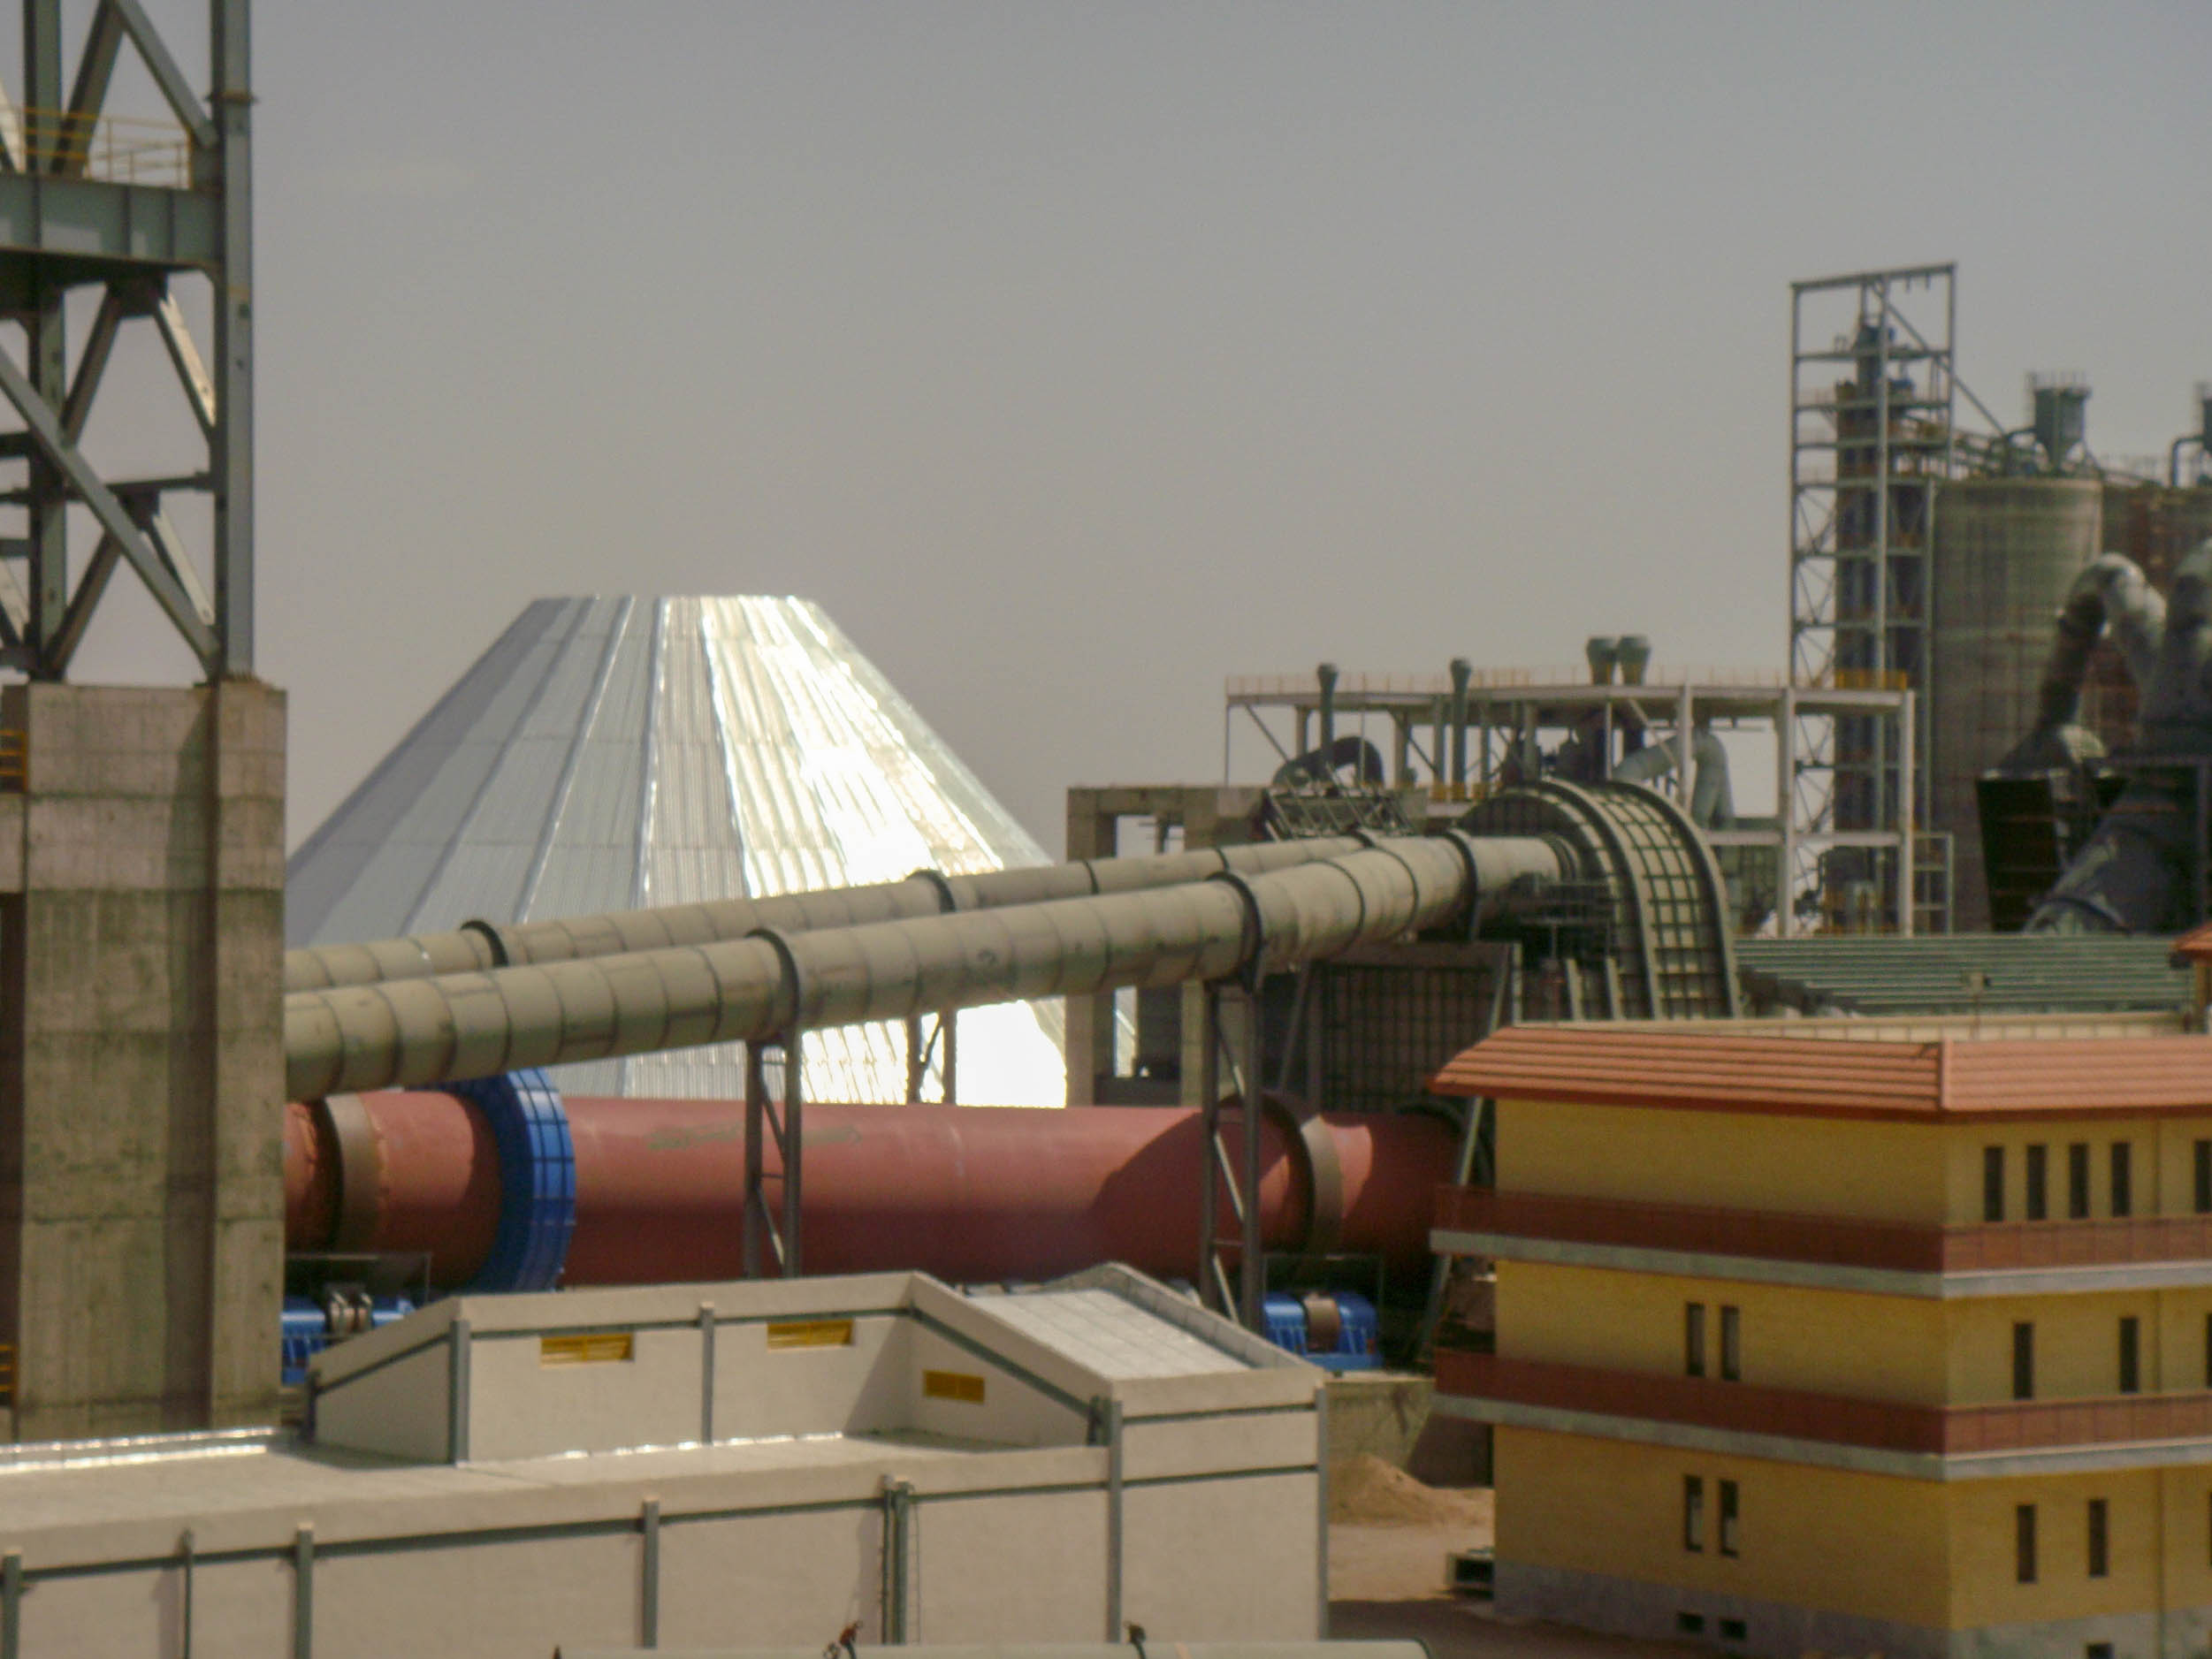 Rotary Kiln of Naein Cement-40